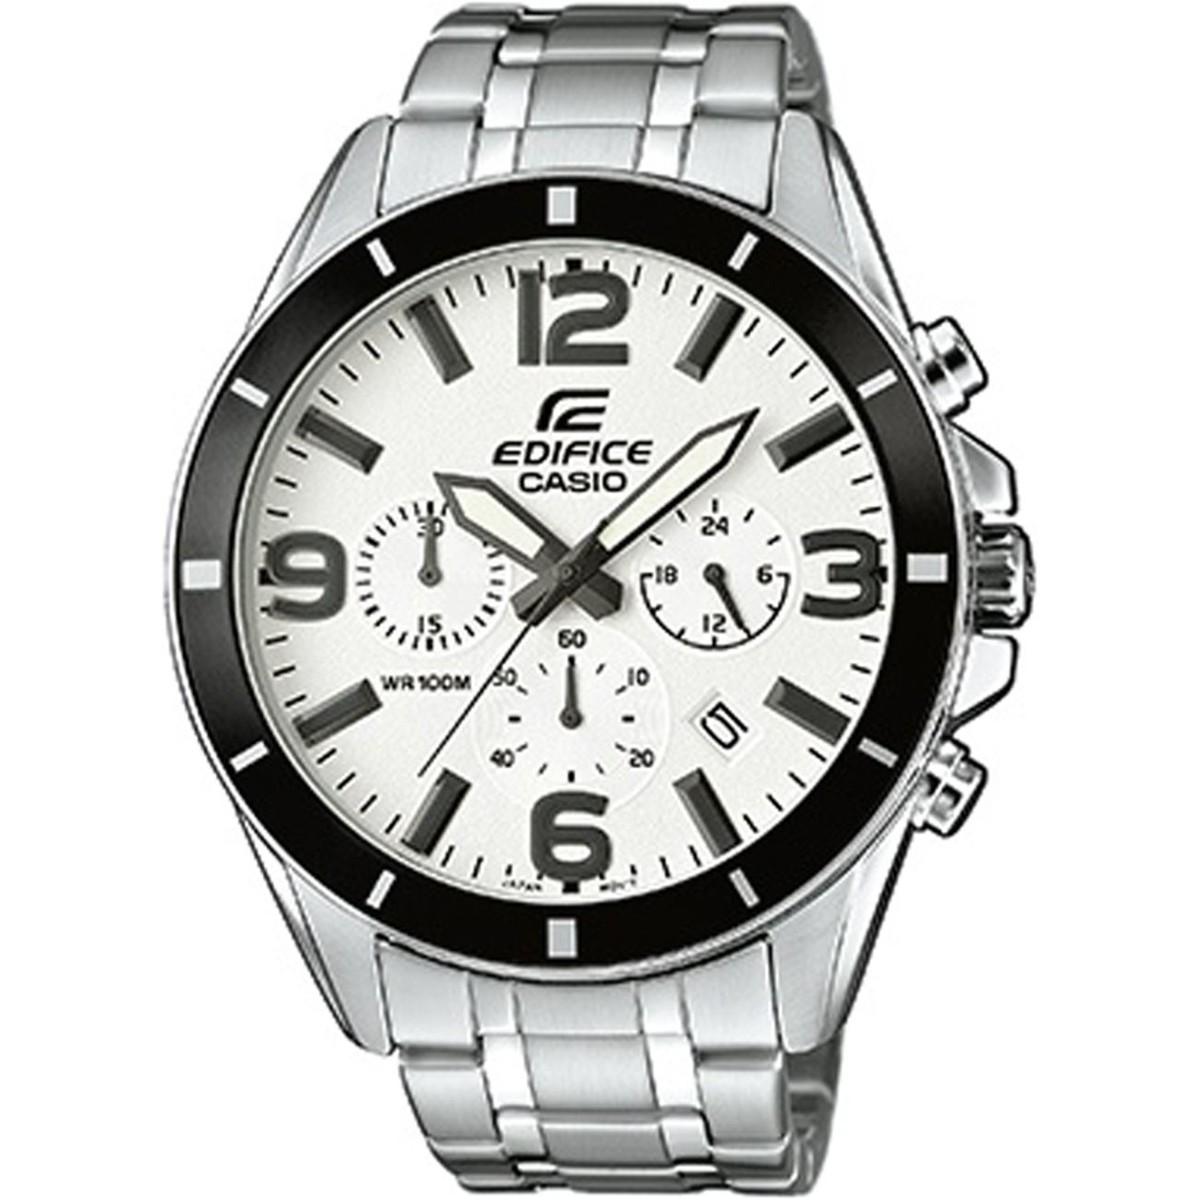 Ceas barbatesc Casio Edifice EFR-553D-7BVUEF original de mana